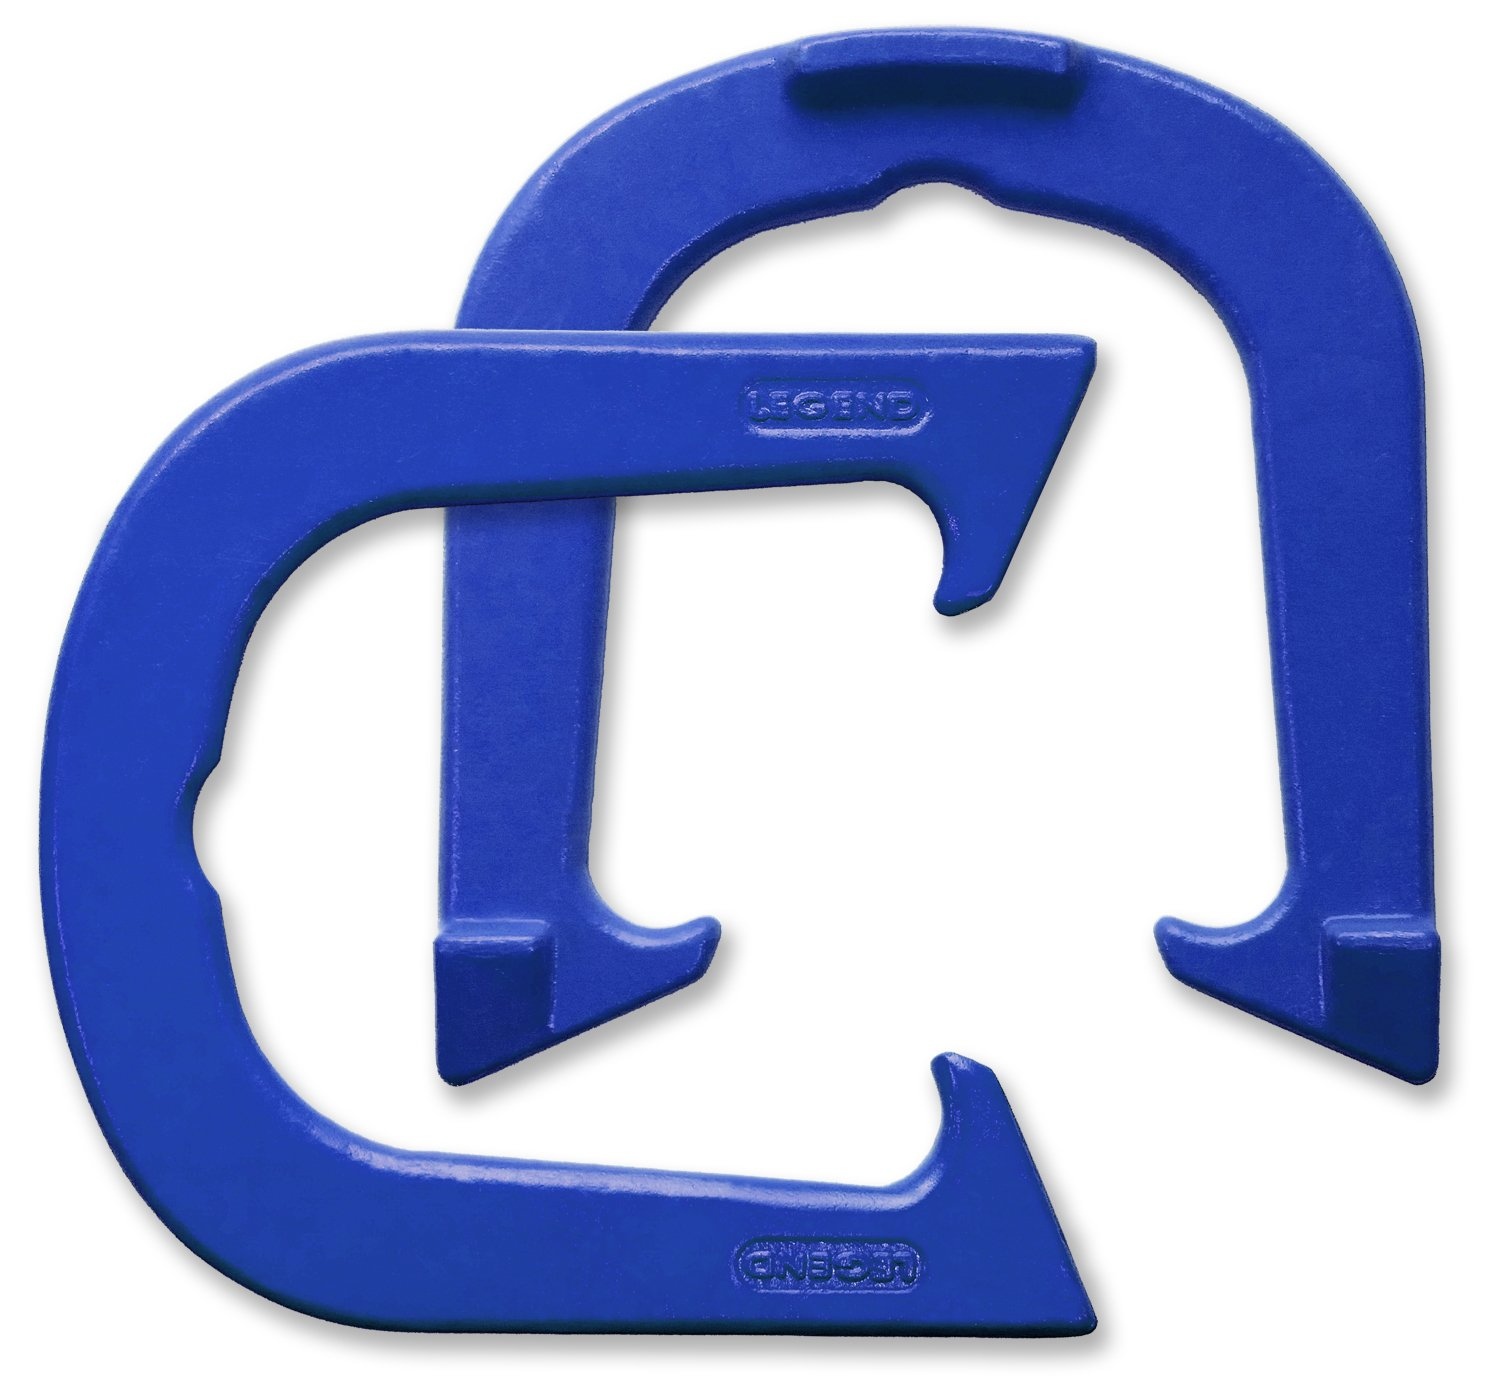 Legend Professional Pitching Horseshoes - Blue Finish - NHPA Sanctioned for Tournament Play - Drop Forged Construction - One Pair (2 Shoes) - Medium Weight by Legend Horseshoes